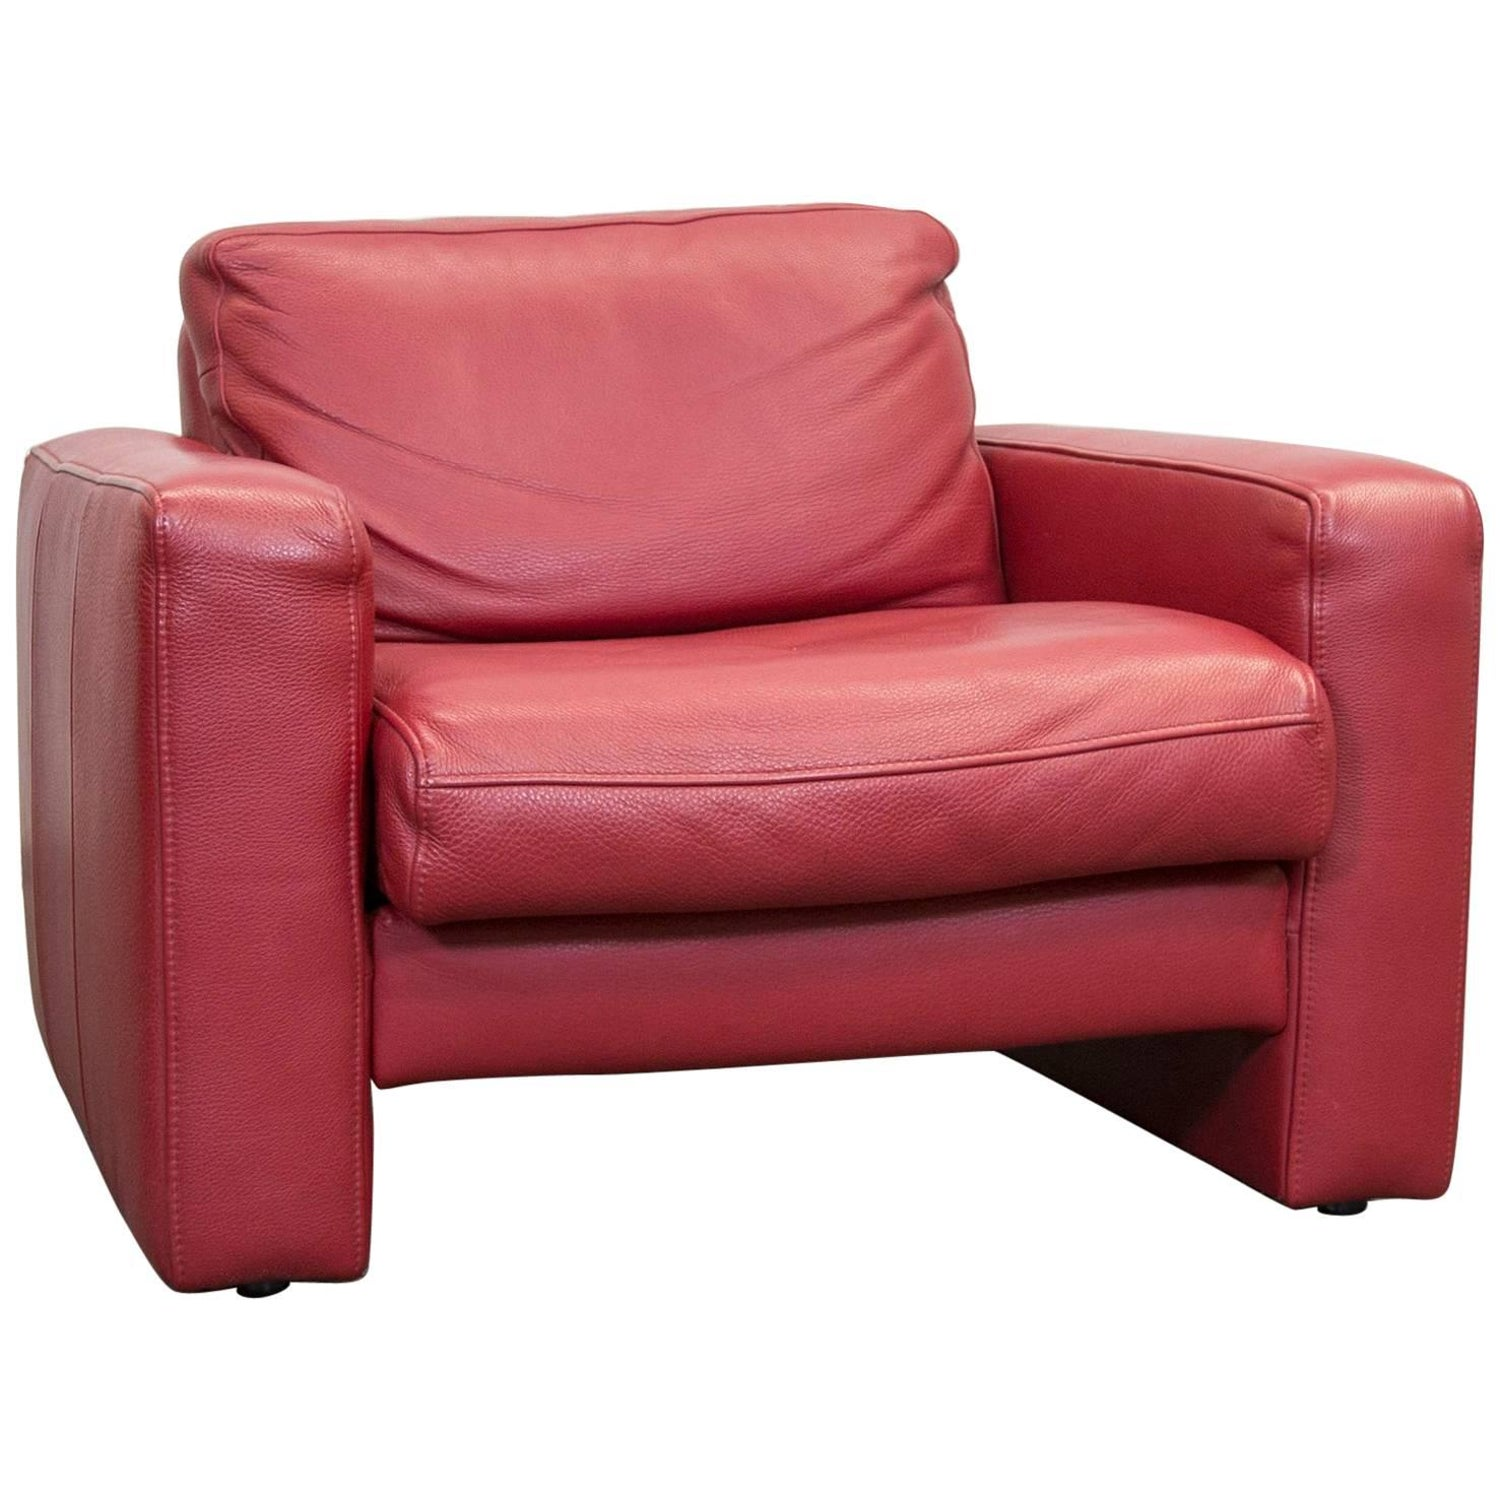 Designer Leather Armchair Red e Seat Chair Modern For Sale at